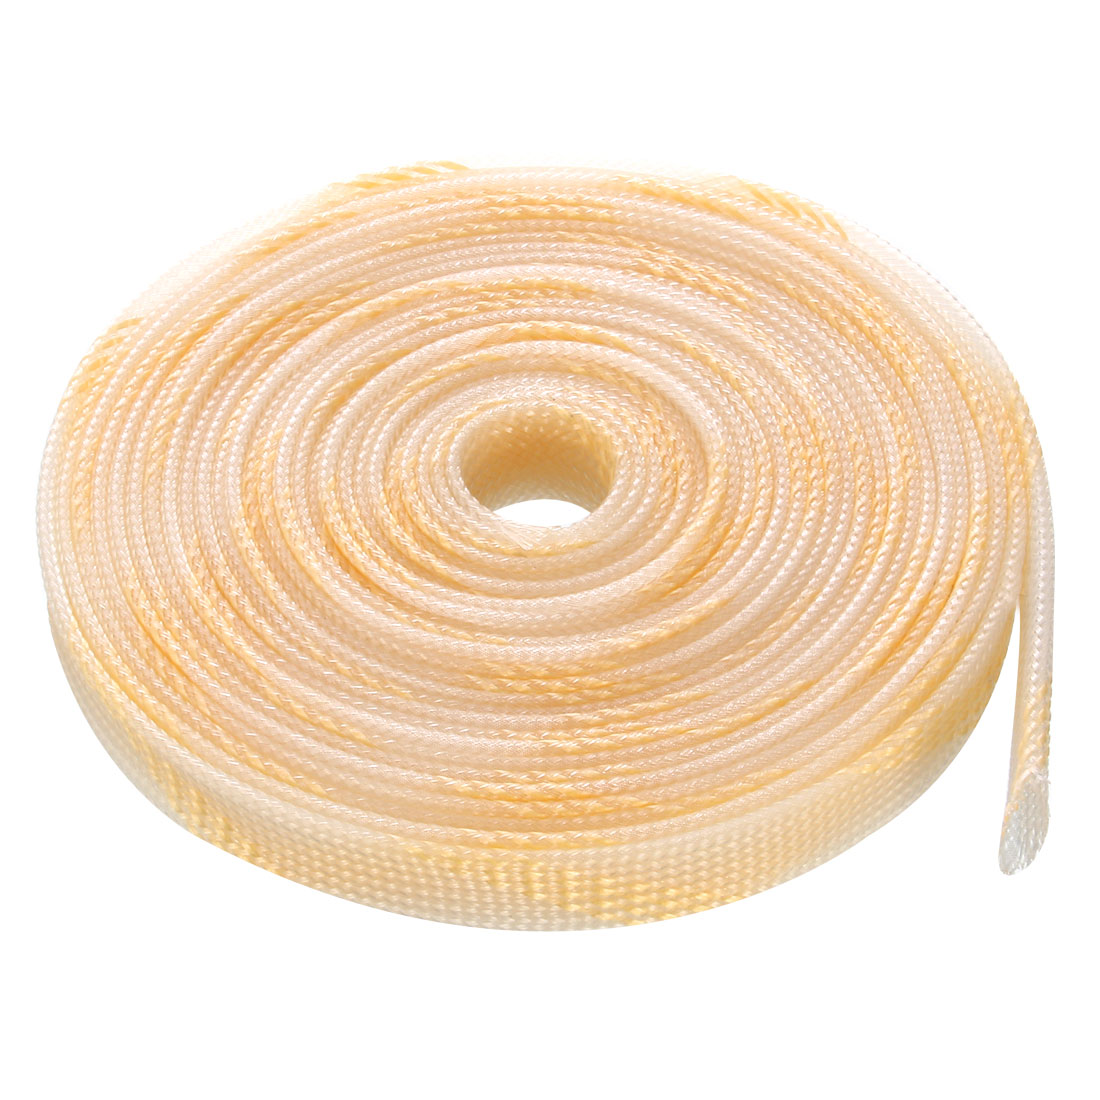 16mm Dia Tight Braided PET Expandable Sleeving Cable Wrap Sheath Transparent Orange 16Ft